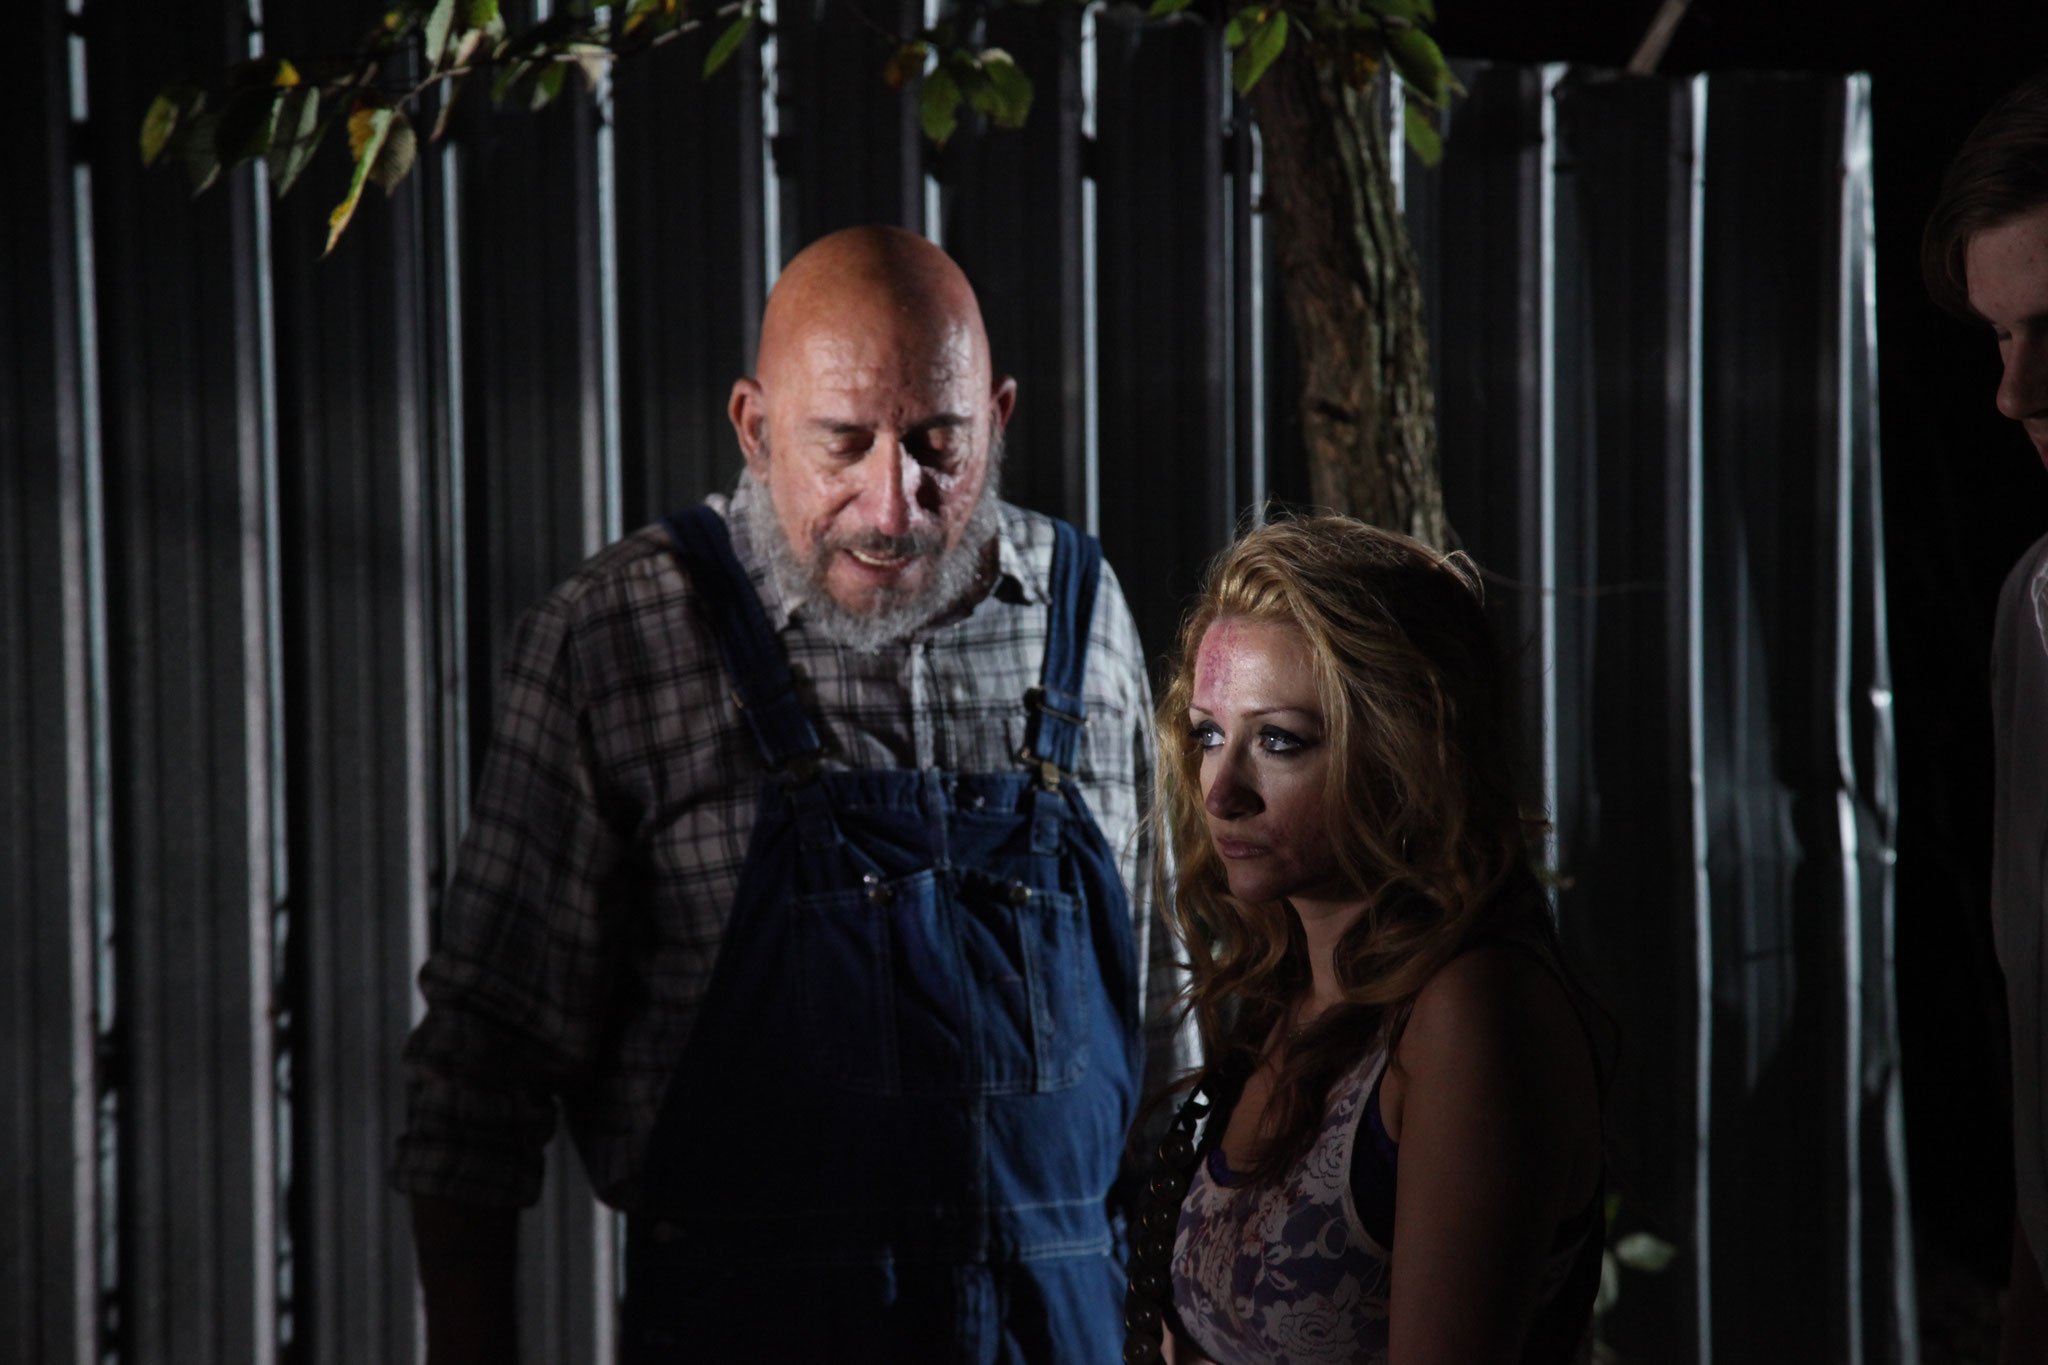 Sid Haig and Fiona Domenica taking a moment to breath between takes.